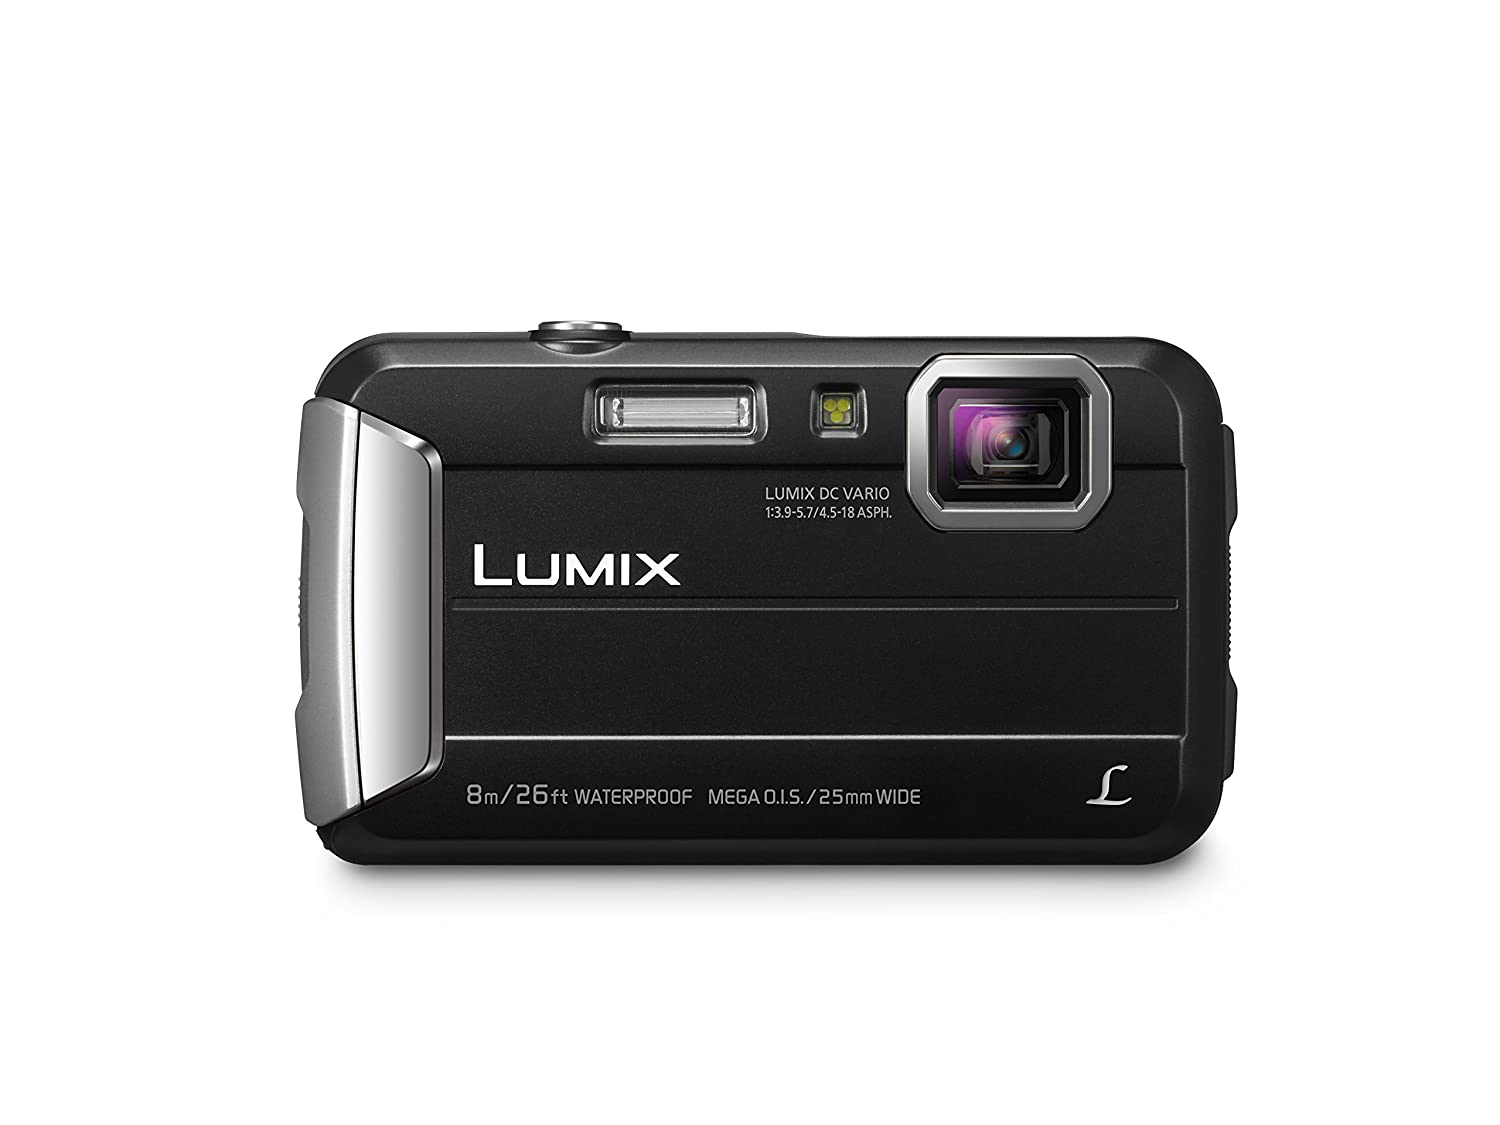 PANASONIC LUMIX Waterproof Digital Camera Underwater Camcorder with Optical Image Stabilizer, Time Lapse, Torch Light and 220MB Built-In Memory – DMC-TS30K (Black)